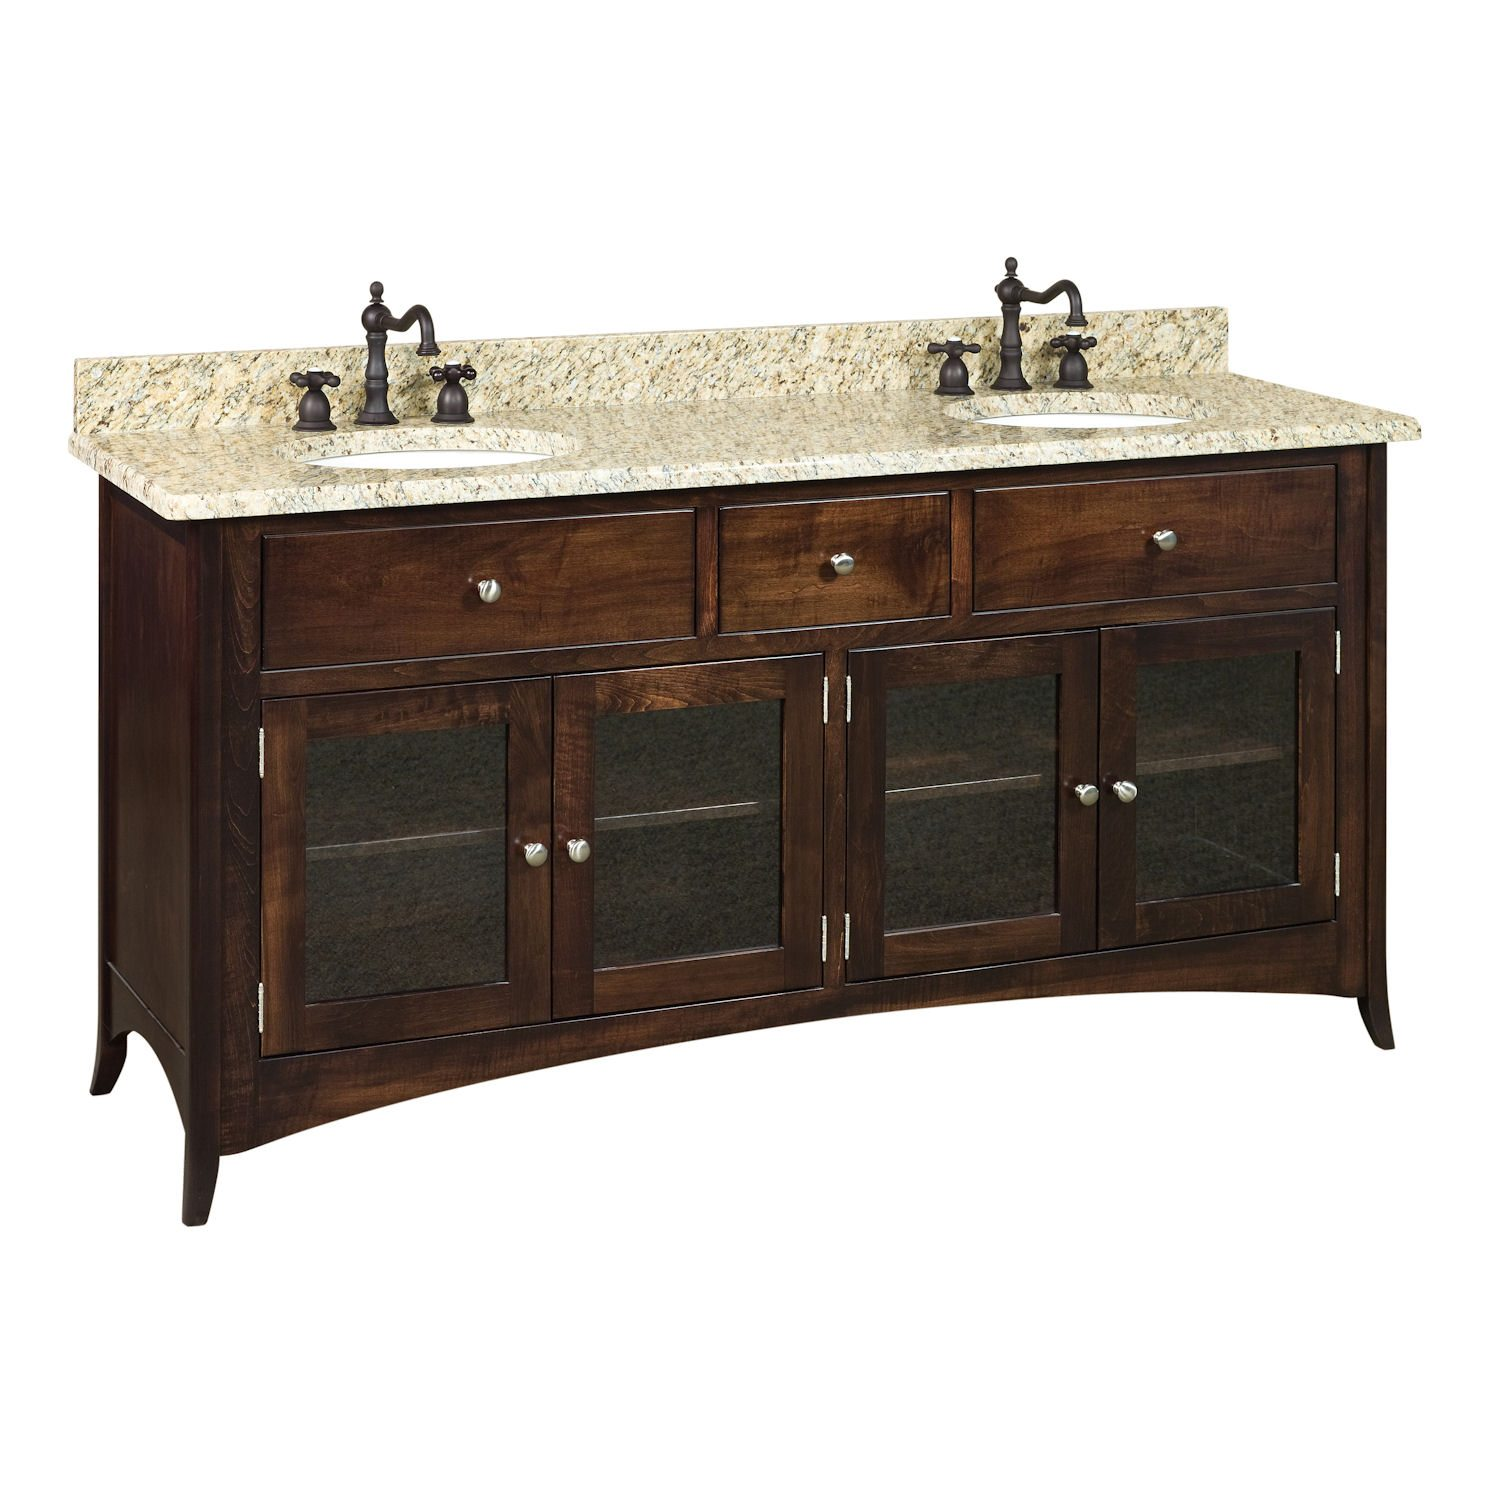 bathroom vanity sink oak columbia double pin solid white cabinet finish surface latte